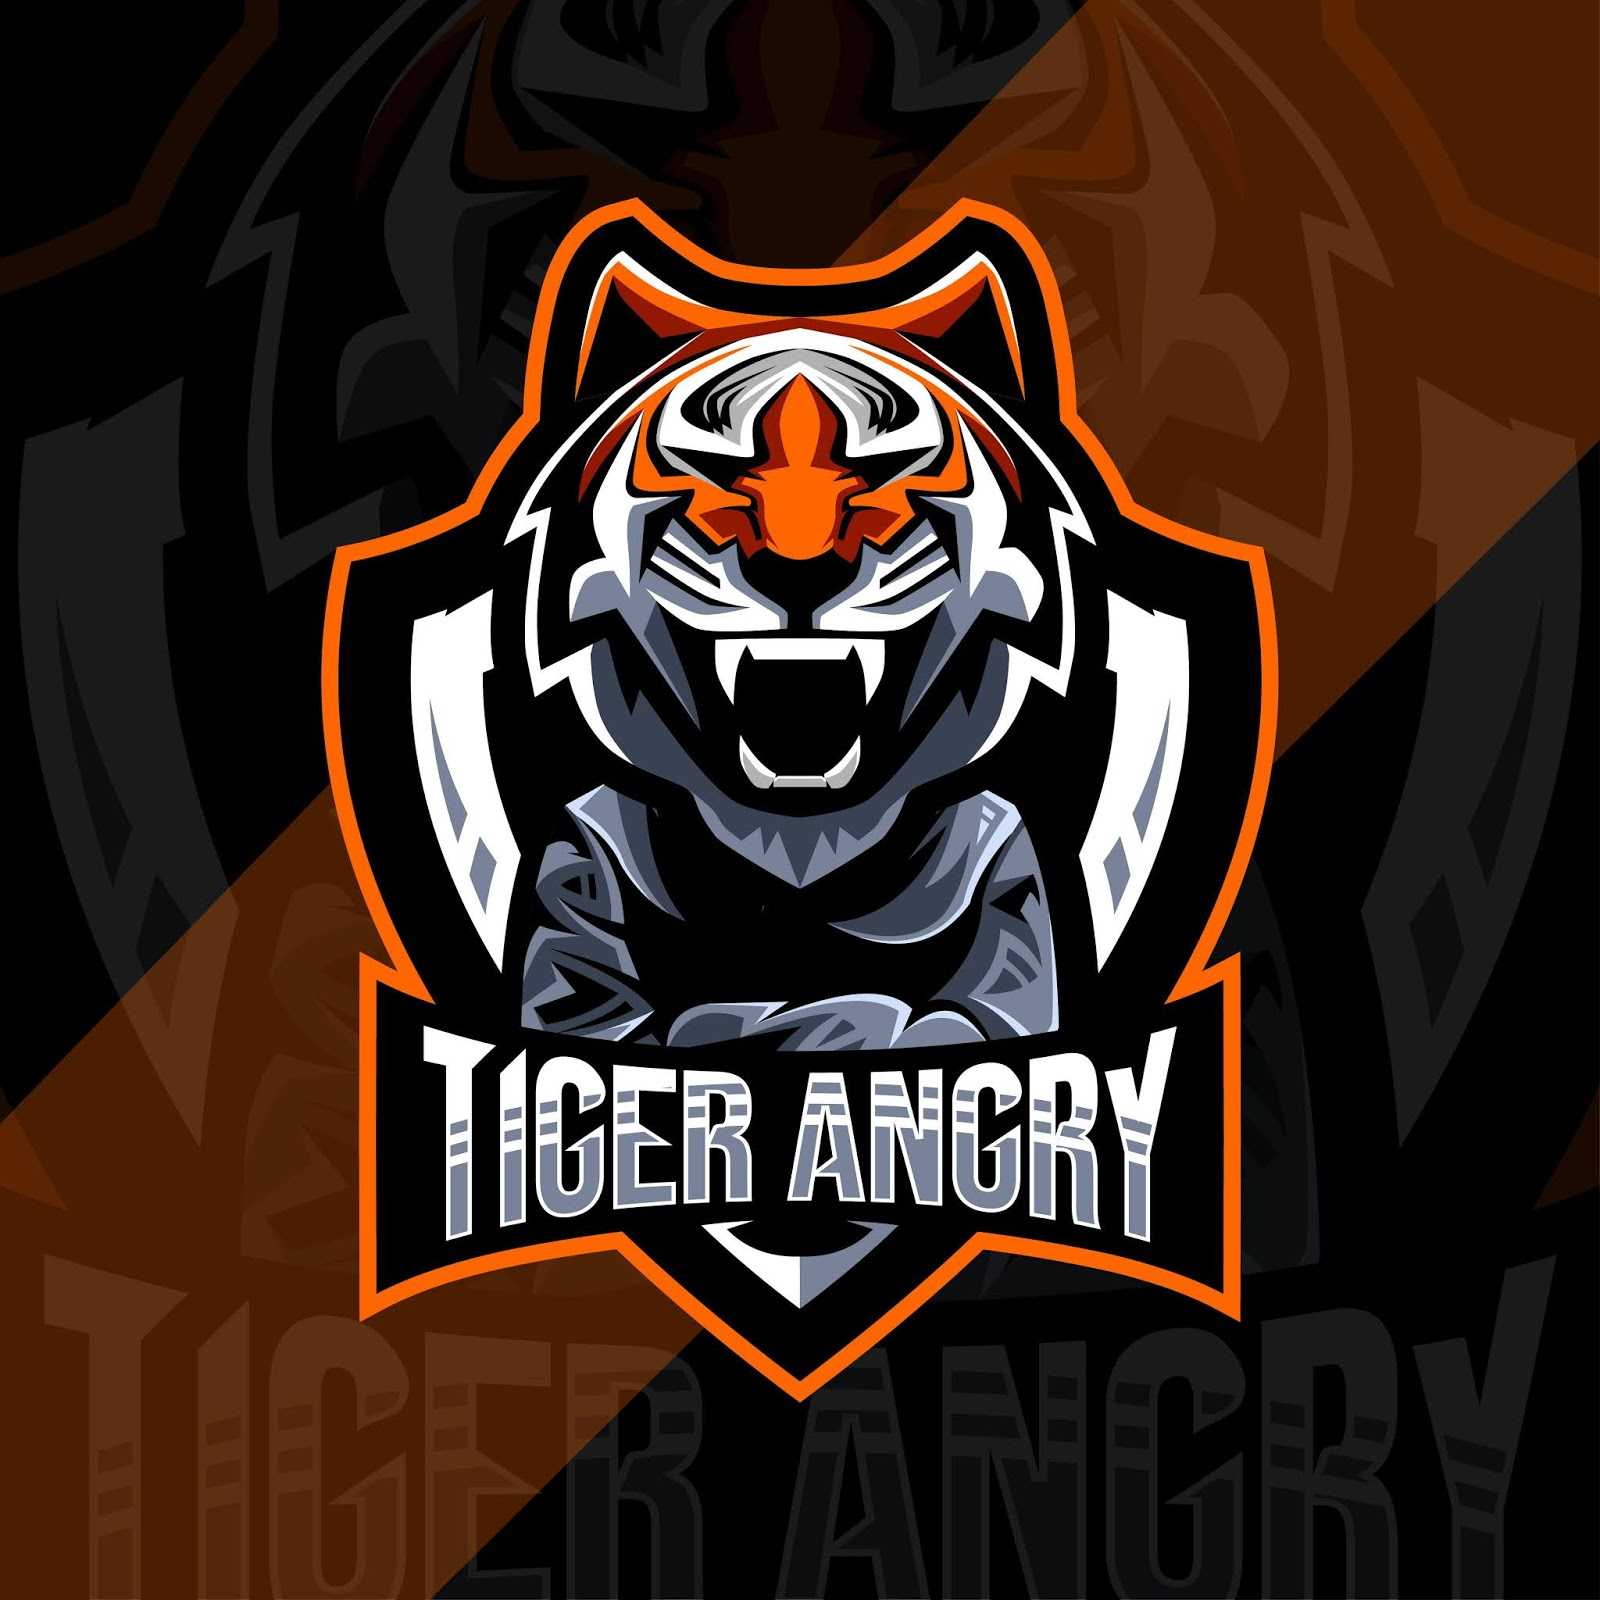 Cute Tiger Angry Mascot Logo Esport Free Download Vector CDR, AI, EPS and PNG Formats